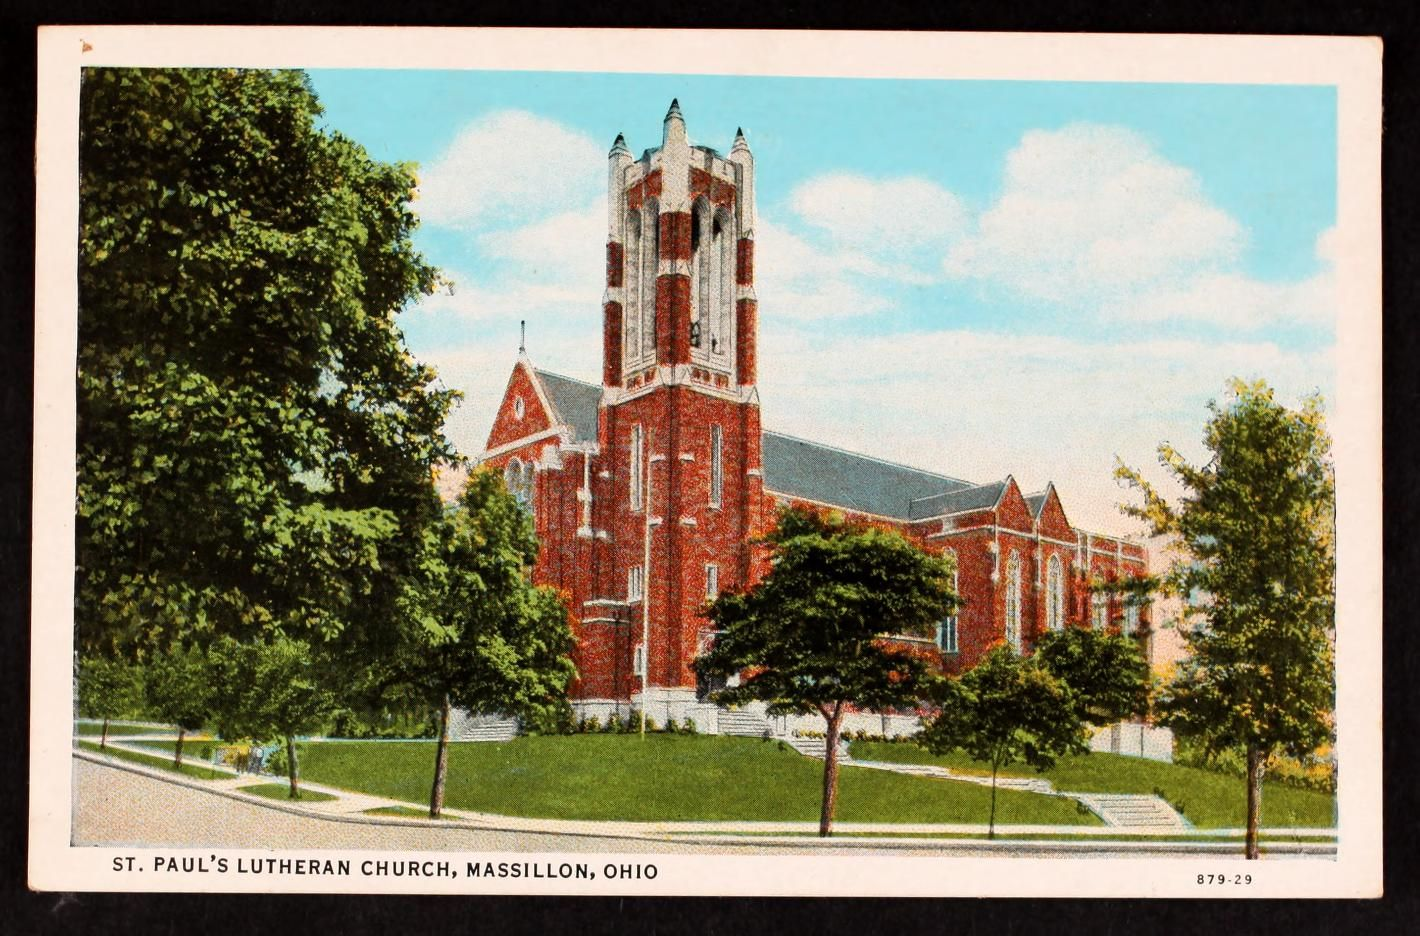 St pauls lutheran church massillon ohio christian art and st pauls lutheran church massillon buycottarizona Image collections